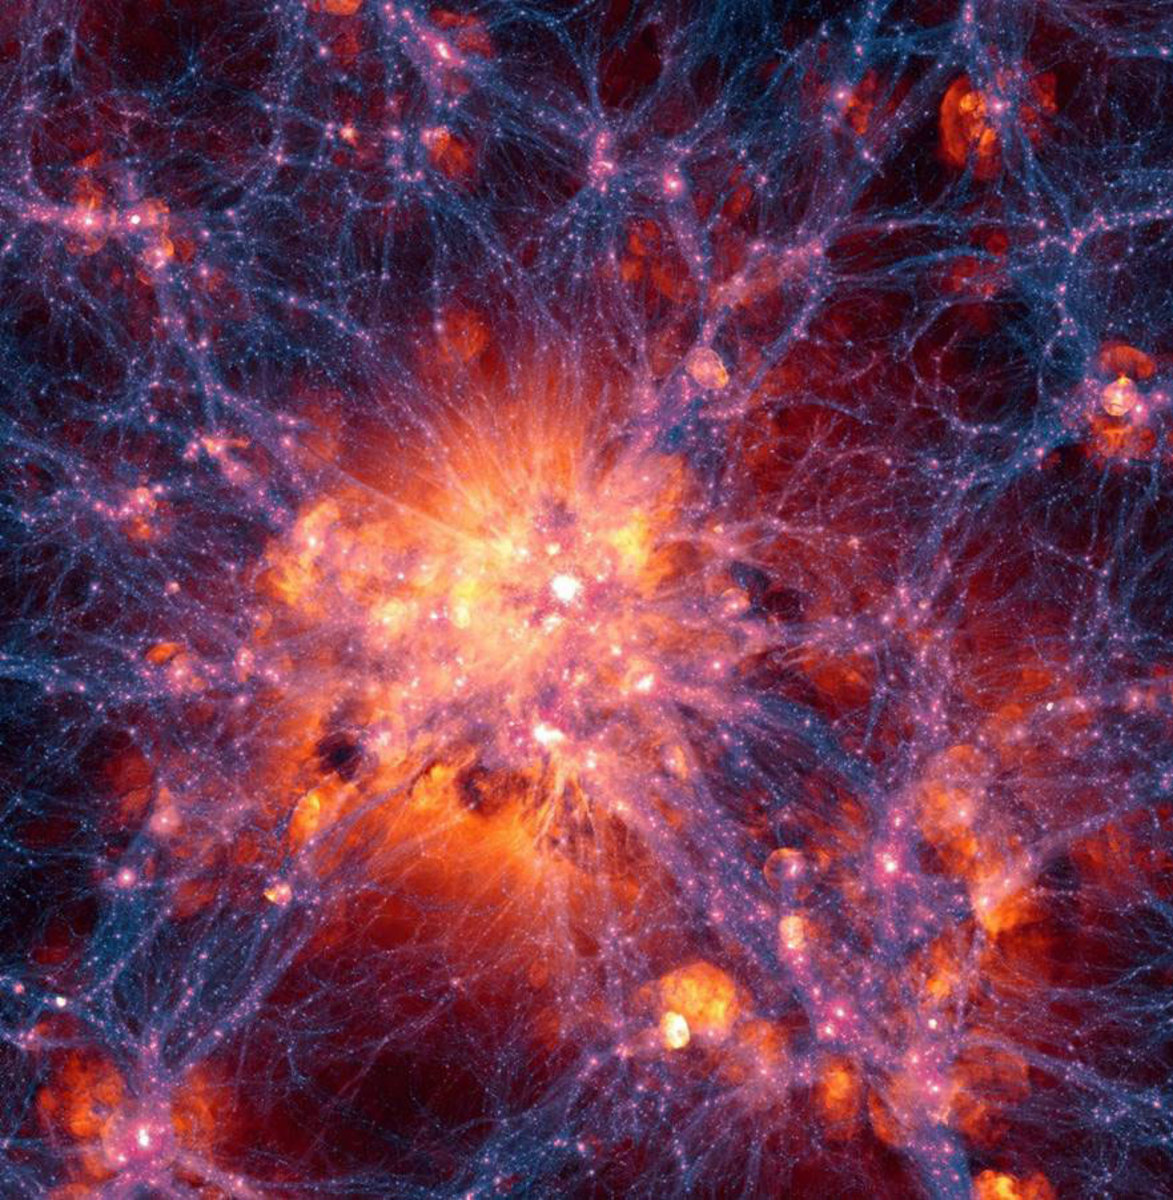 How Was the Cosmic Web Discovered and How Do Psuedo Polyhedrons Relate to It?